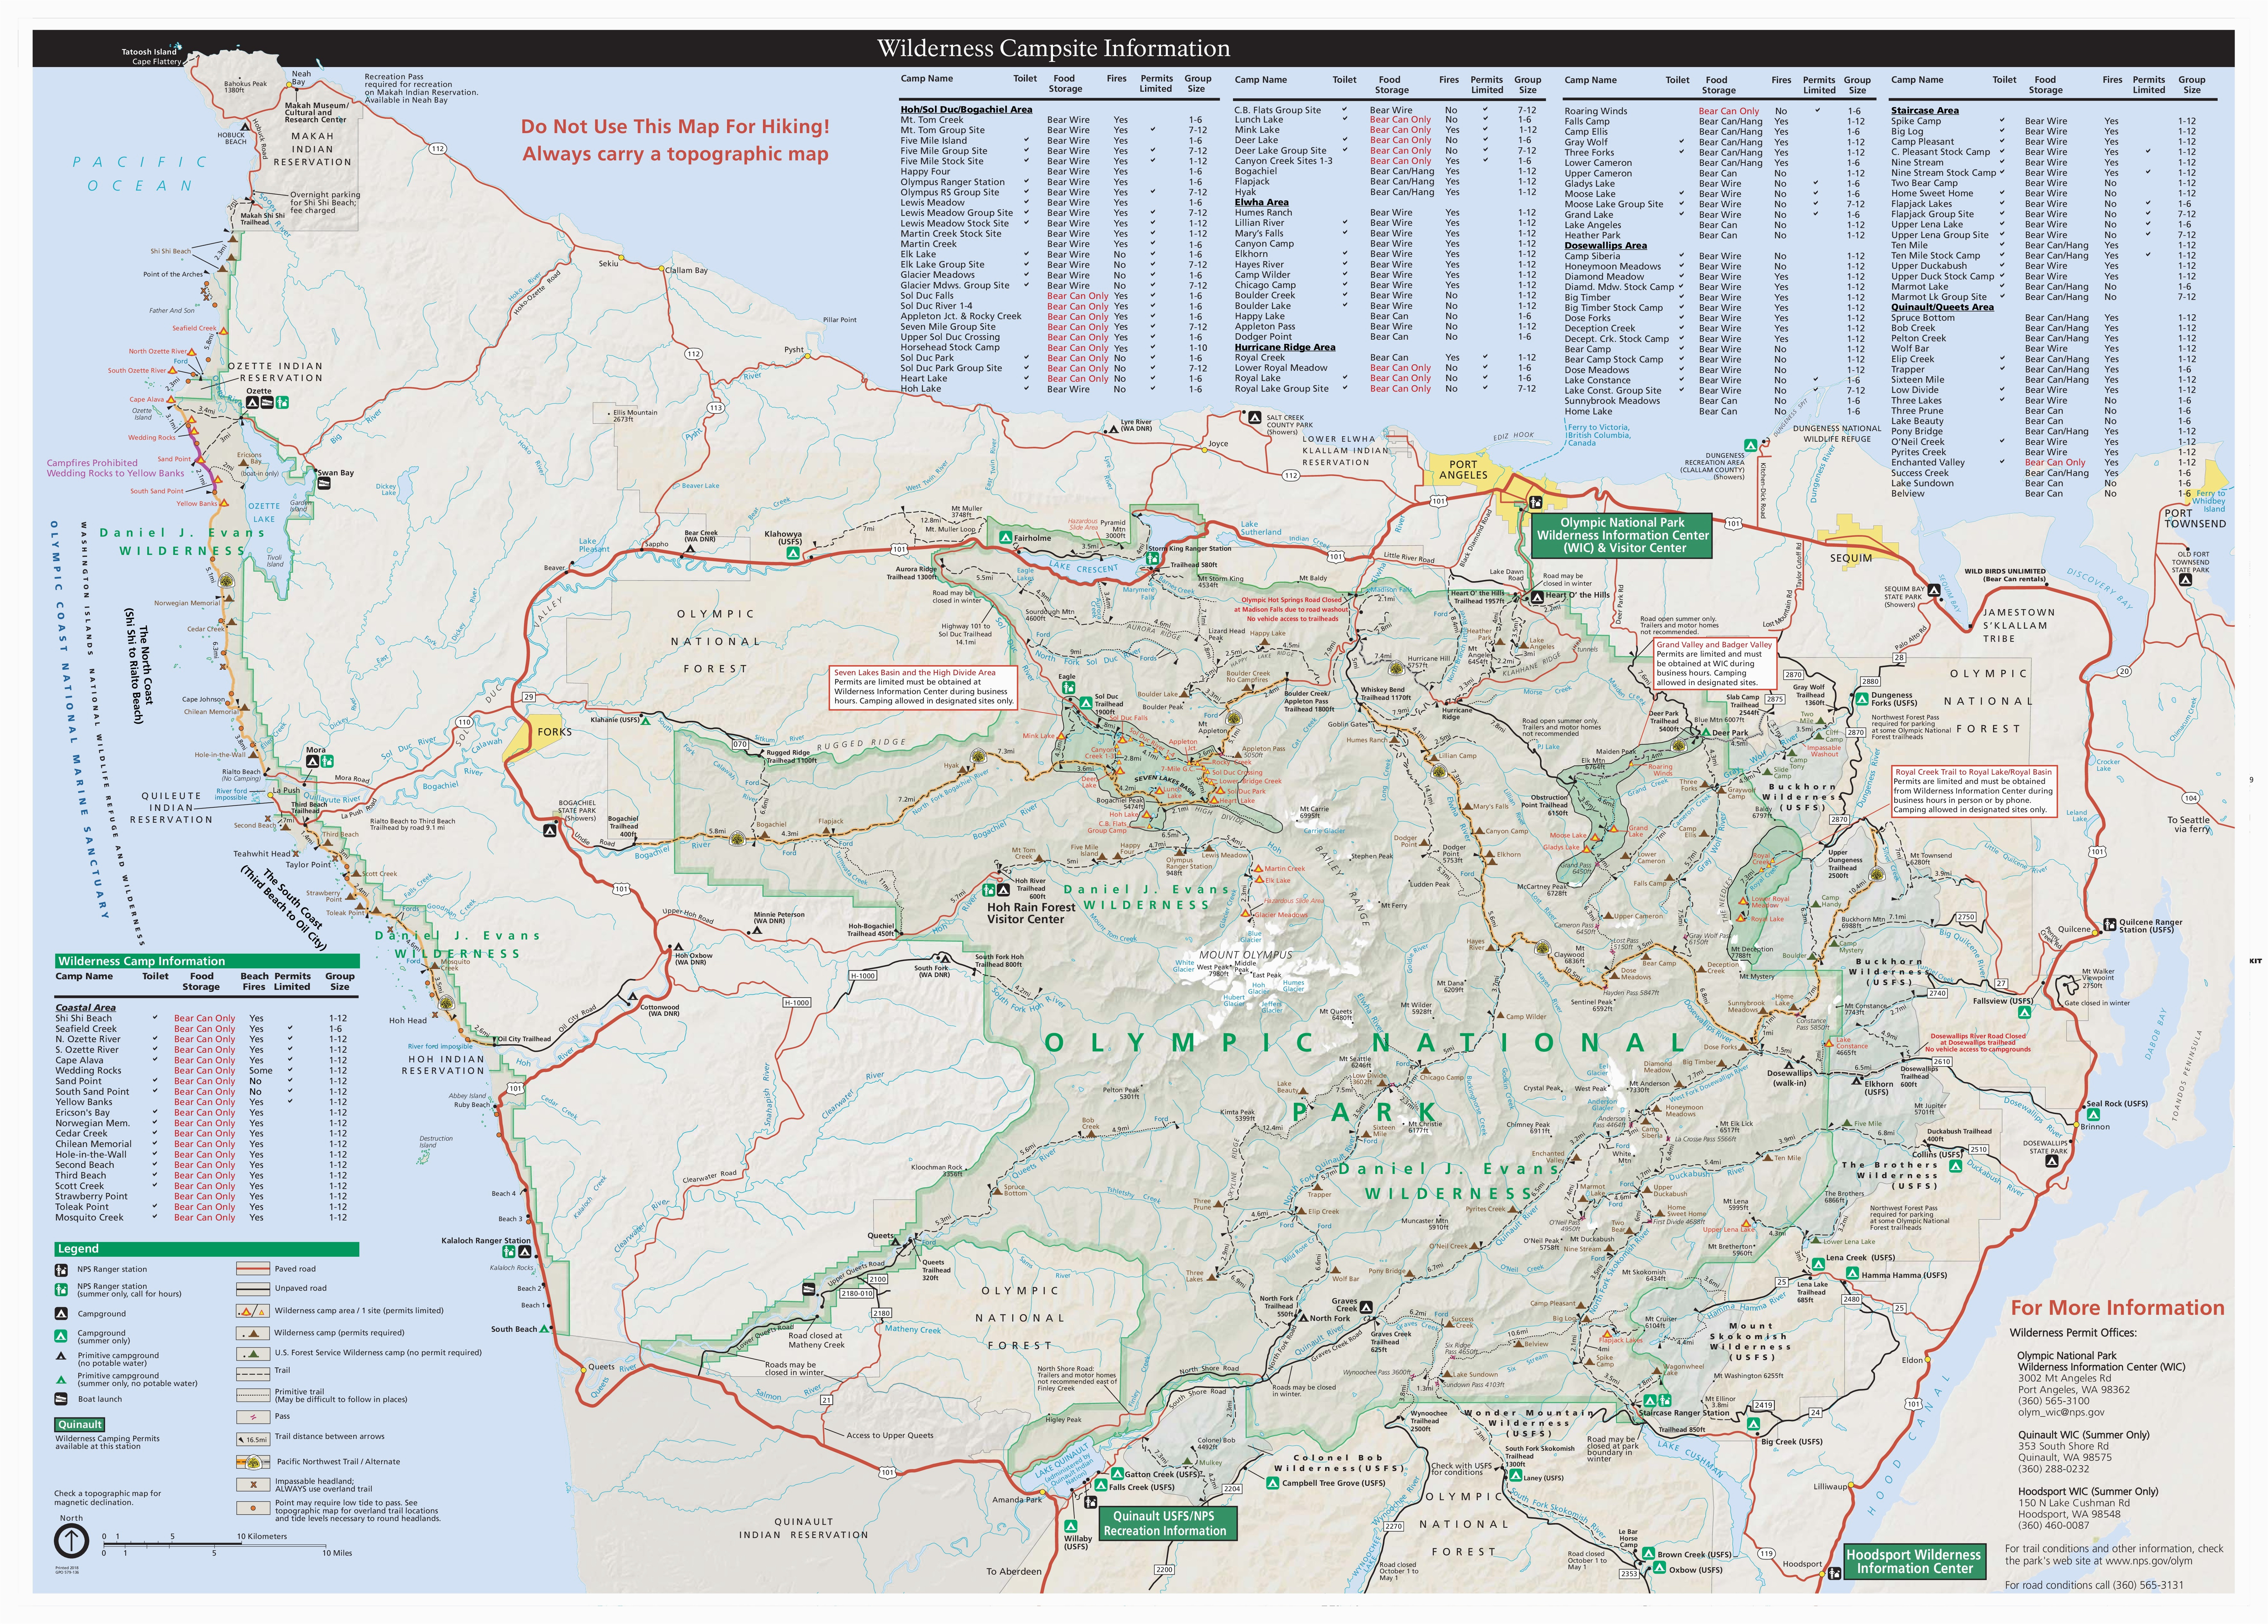 California State Park Camping Map Maps Olympic National Park U S ...